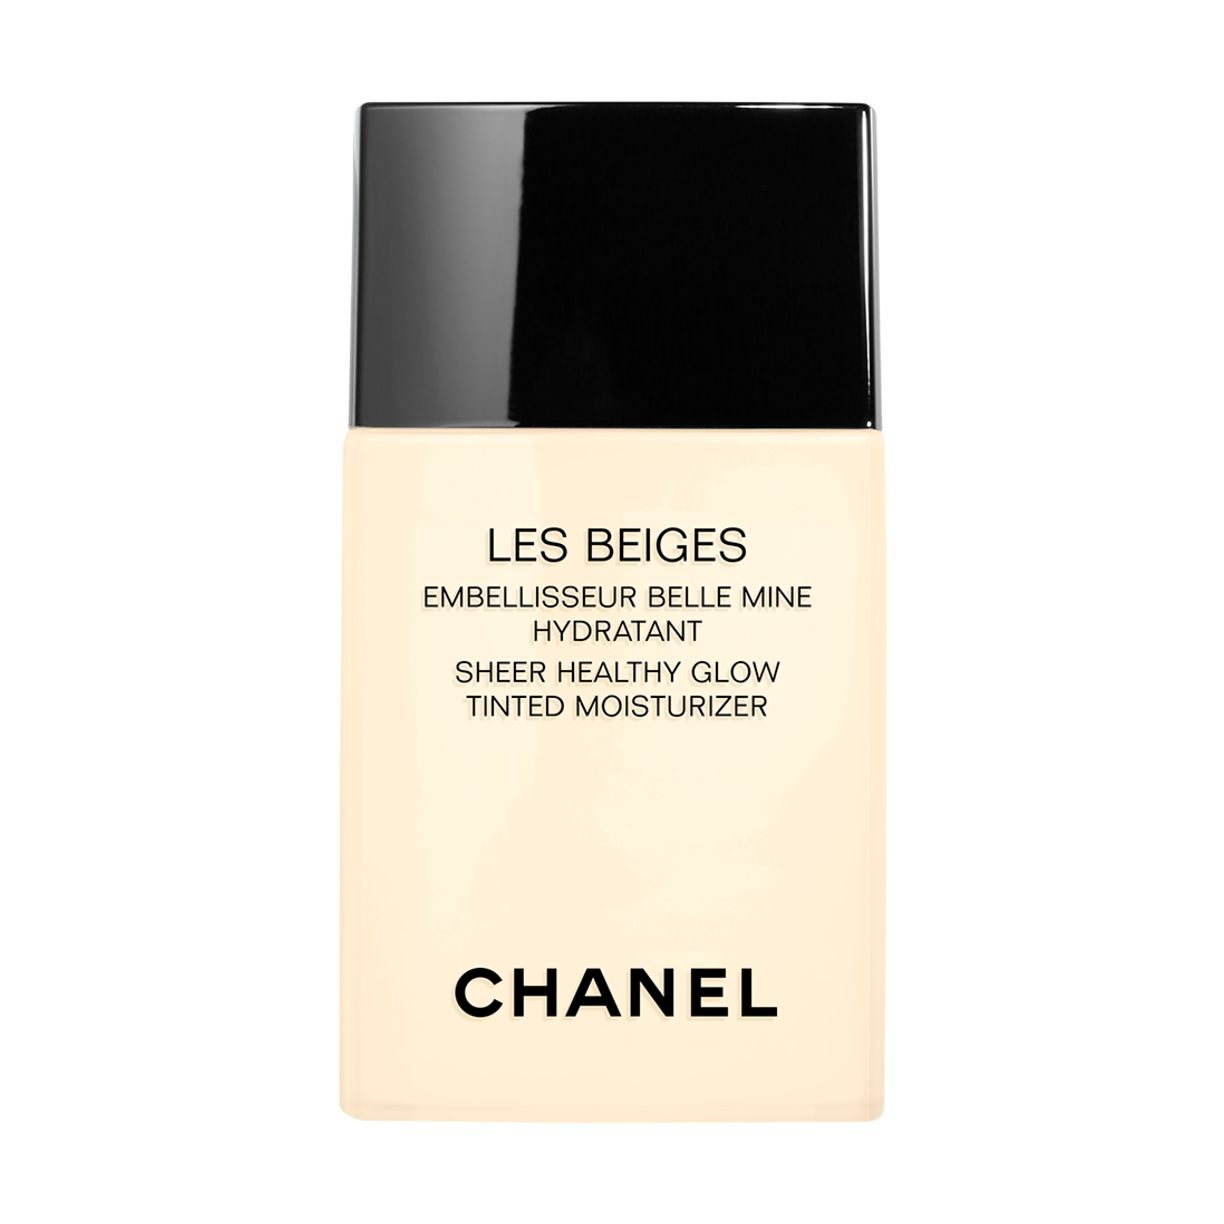 LES BEIGES SHEER HEALTHY GLOW TINTED MOISTURIZER LIGHT